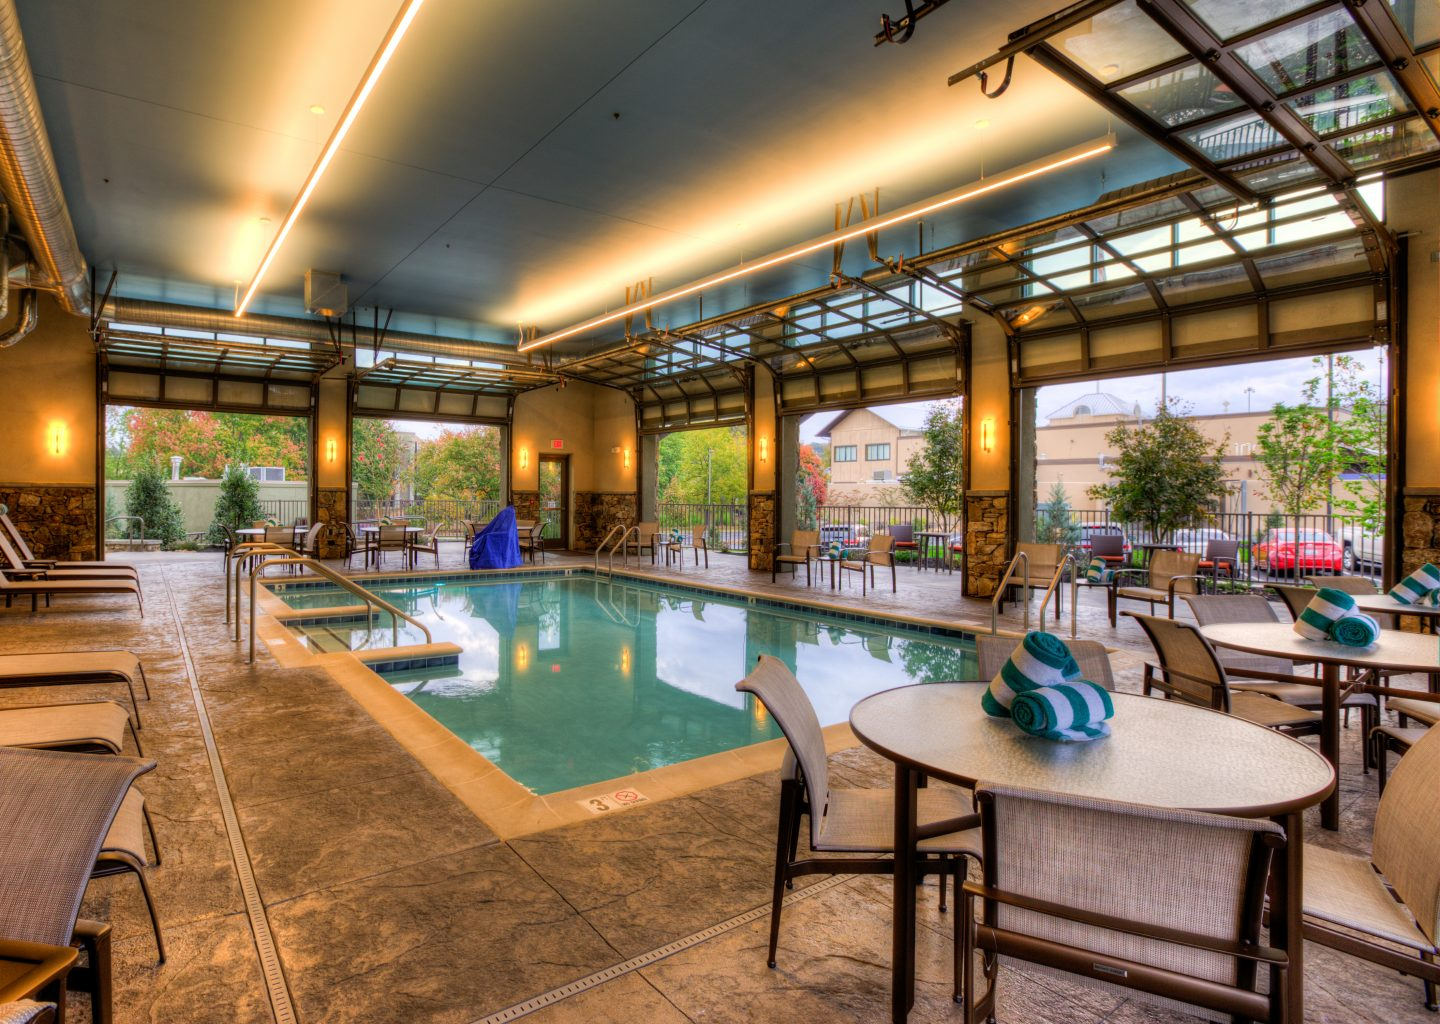 indoor pool area at Courtyard by Marriott Pigeon Forge hotel